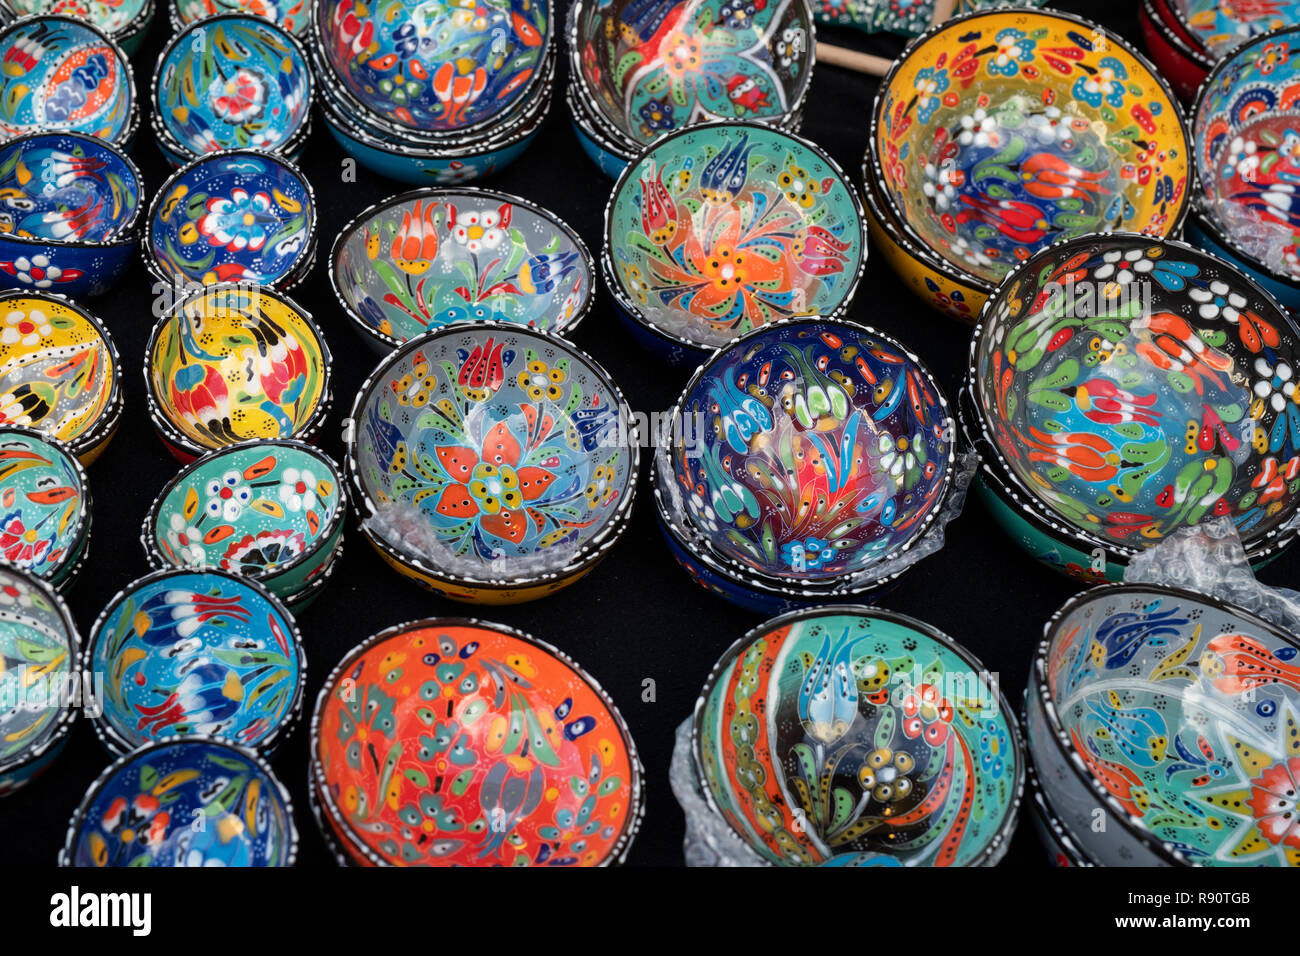 Colourful handmade pottery bowls on a stall at a victorian christmas market. Stratford Upon Avon, Warwickshire, England - Stock Image